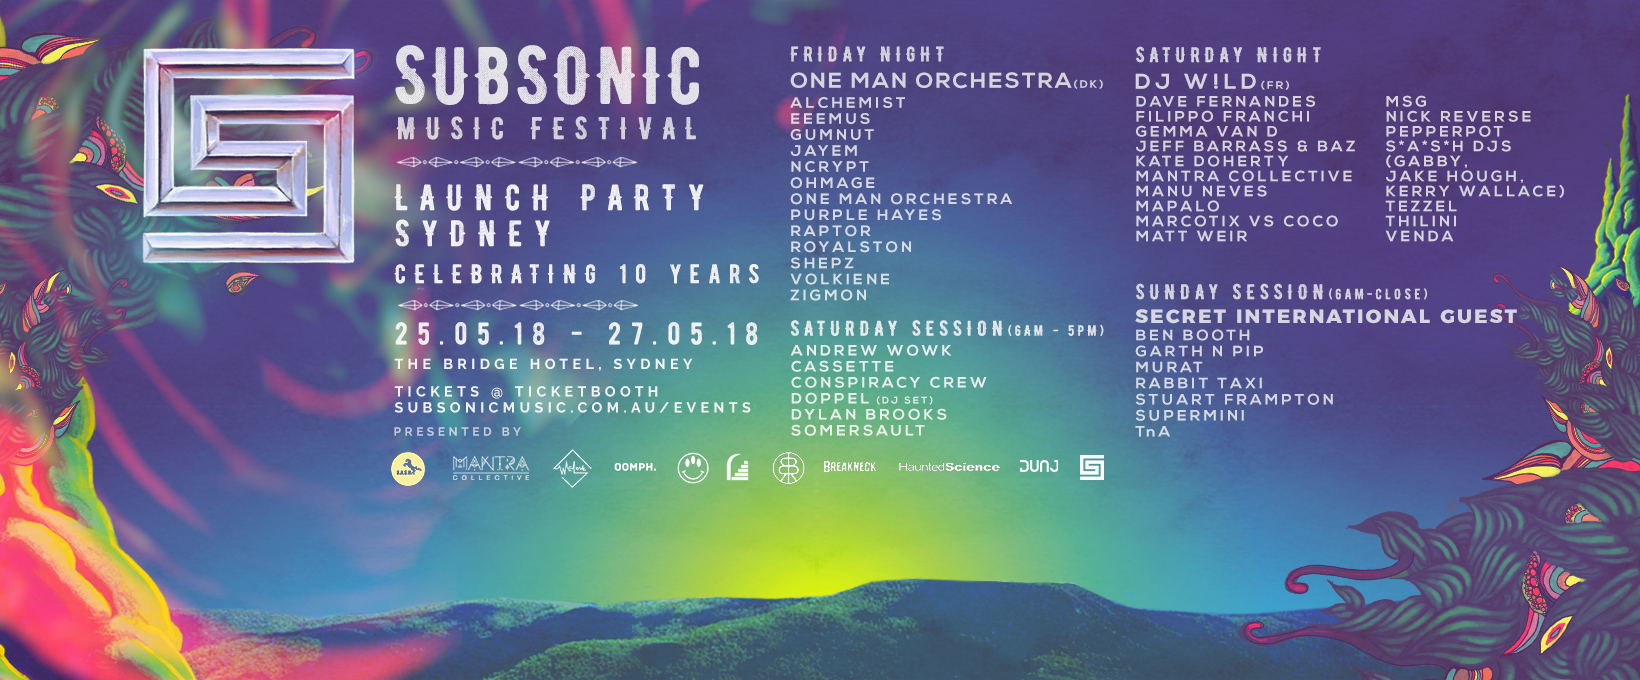 Tickets for Subsonic Music Festival 2018 Launch Party